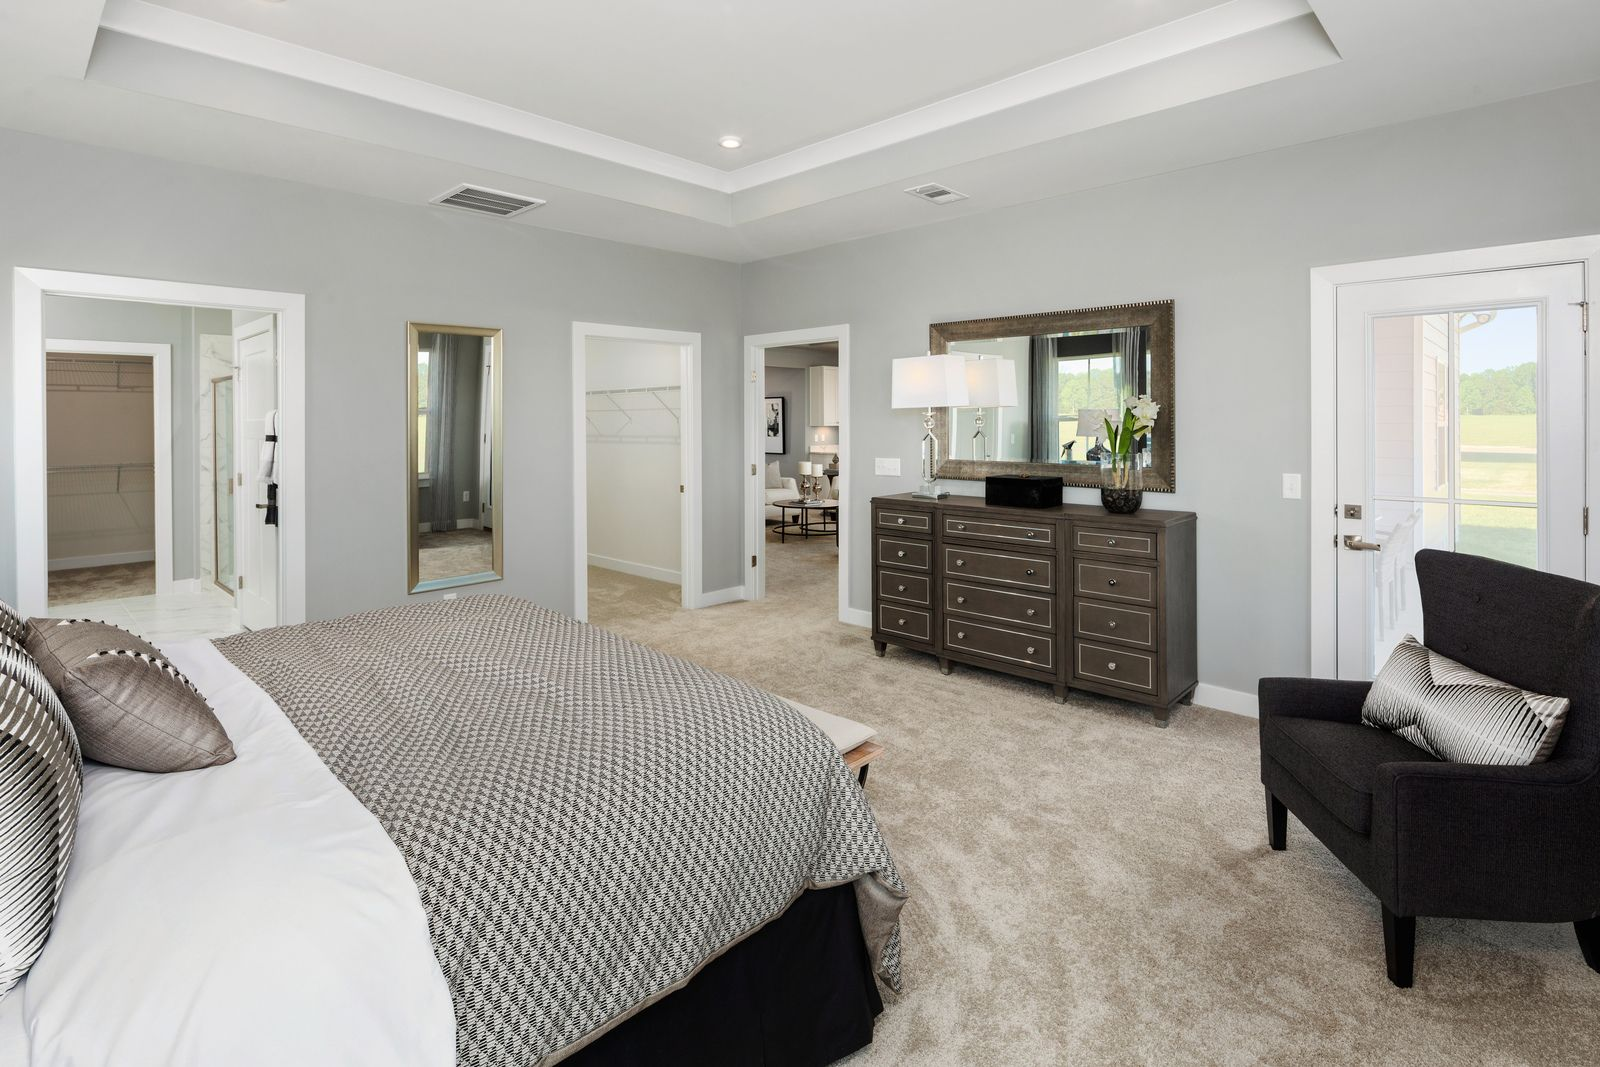 Bedroom featured in the Savannah By Ryan Homes in Washington, MD